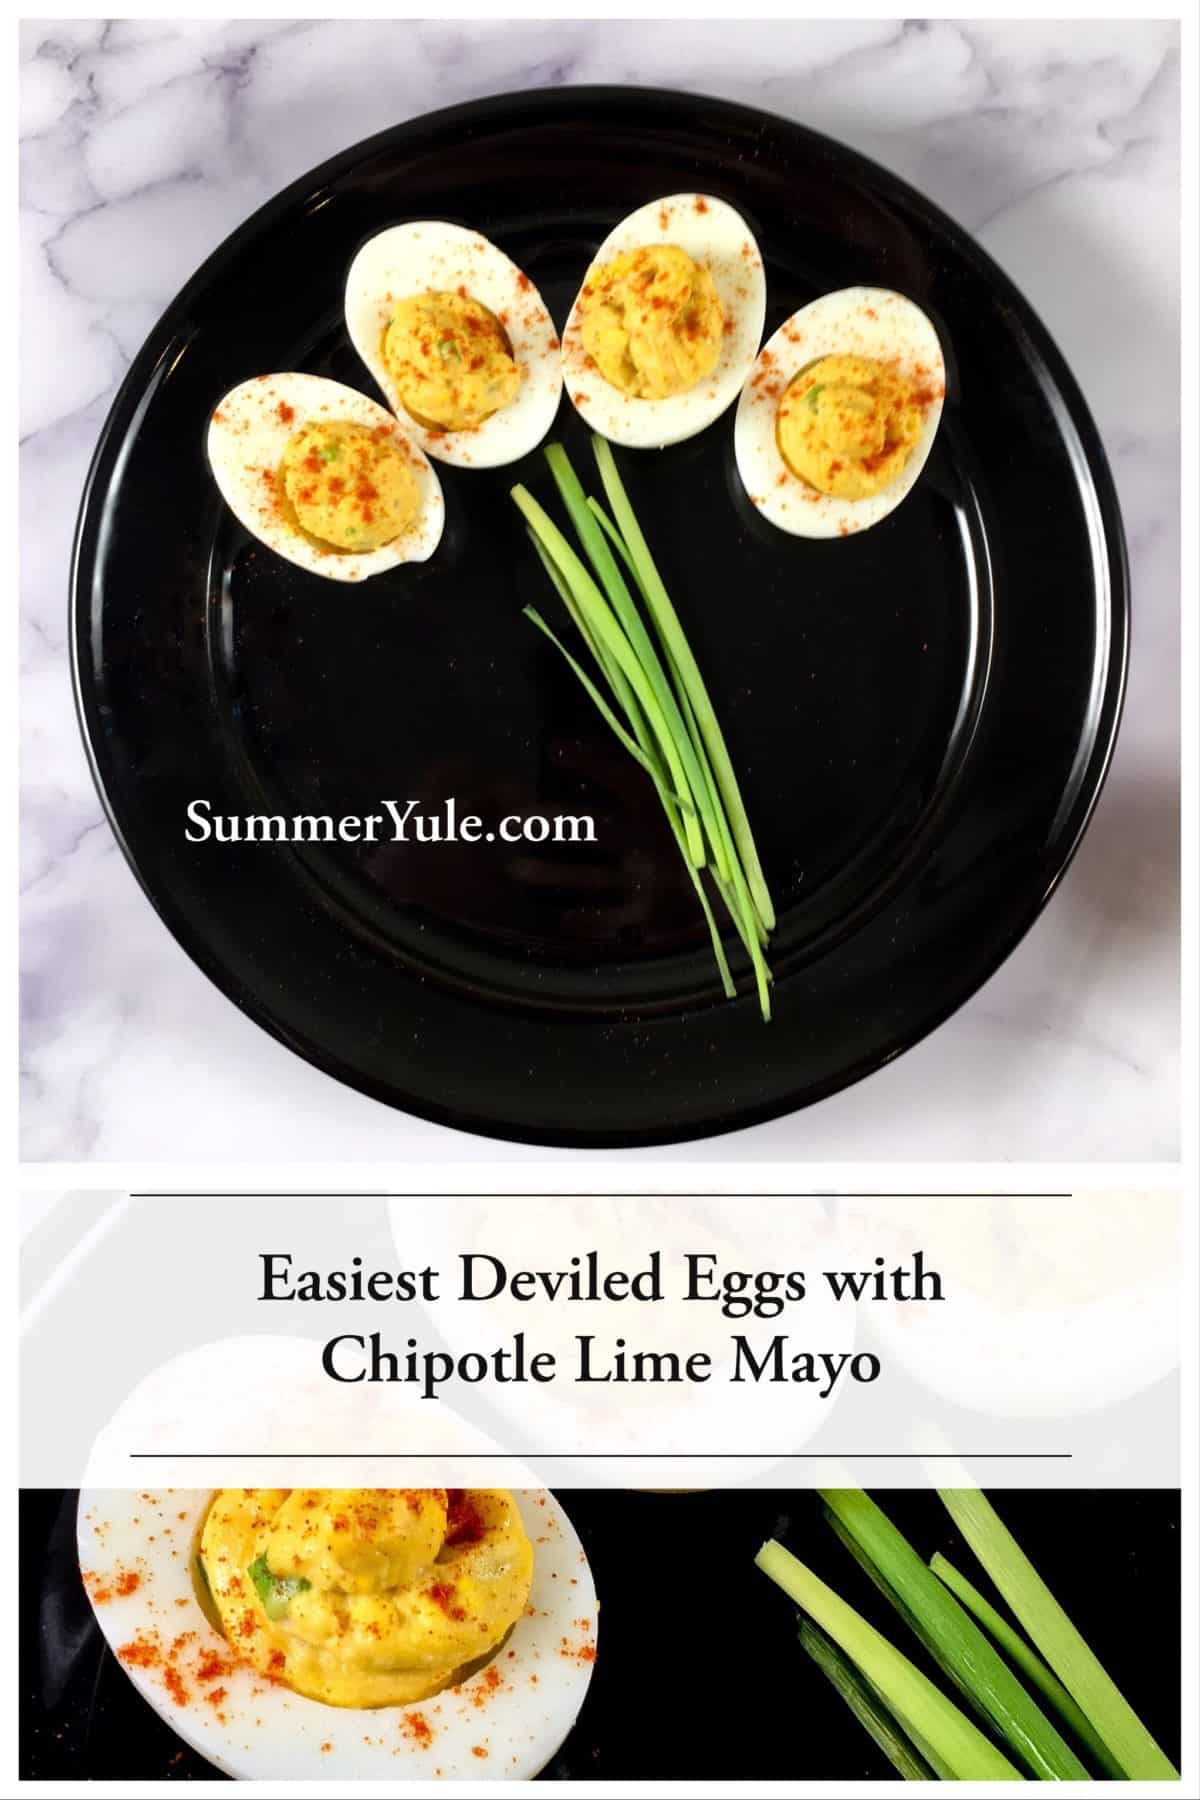 Plate of easiest deviled eggs with chipotle lime mayo and chives; long image for Pinterest